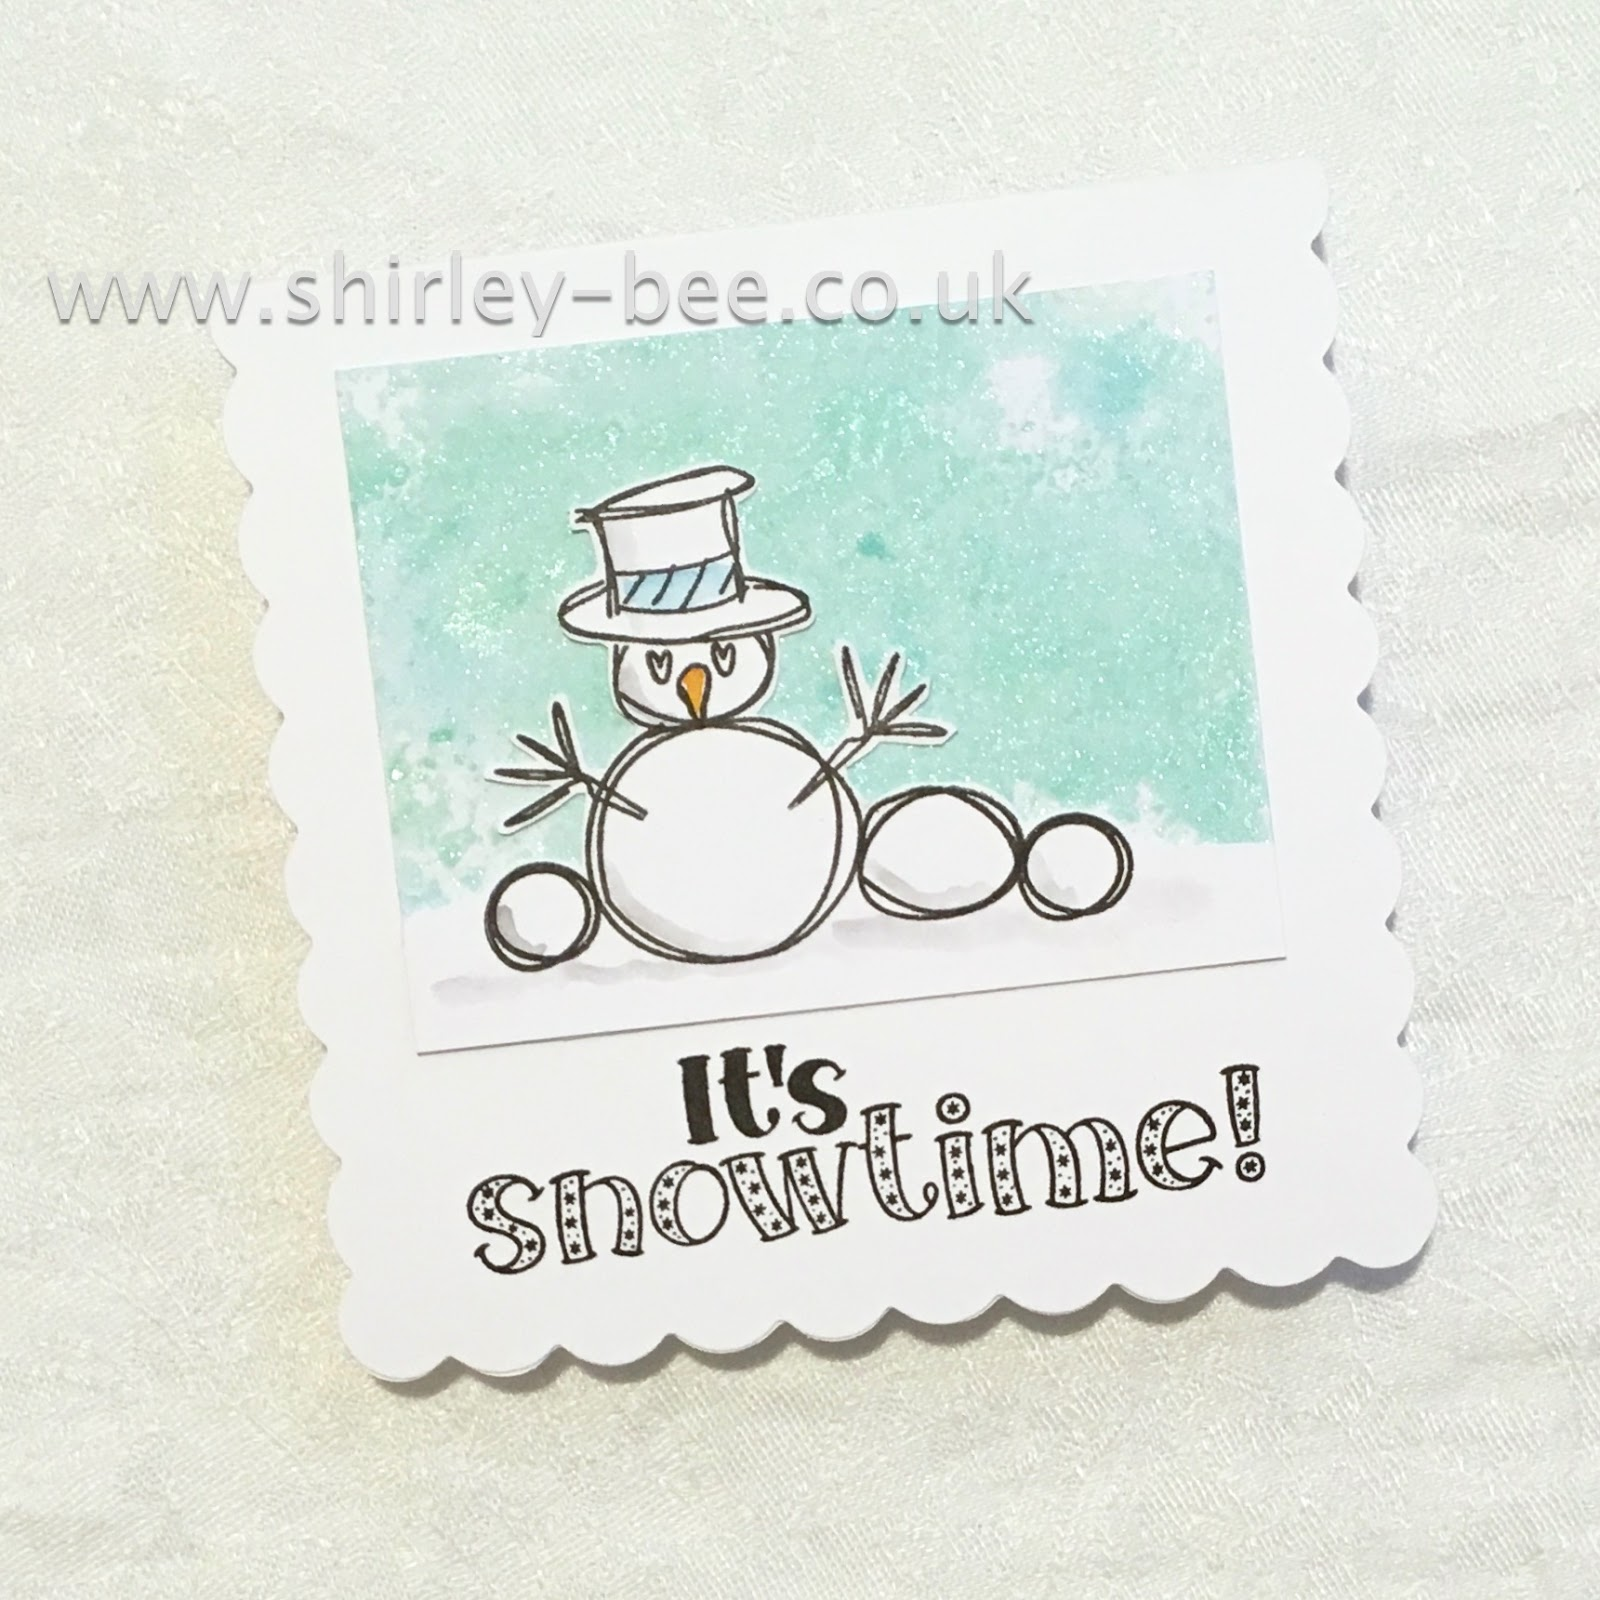 shirley-bee\'s stamping stuff: Is It Christmas Yet?